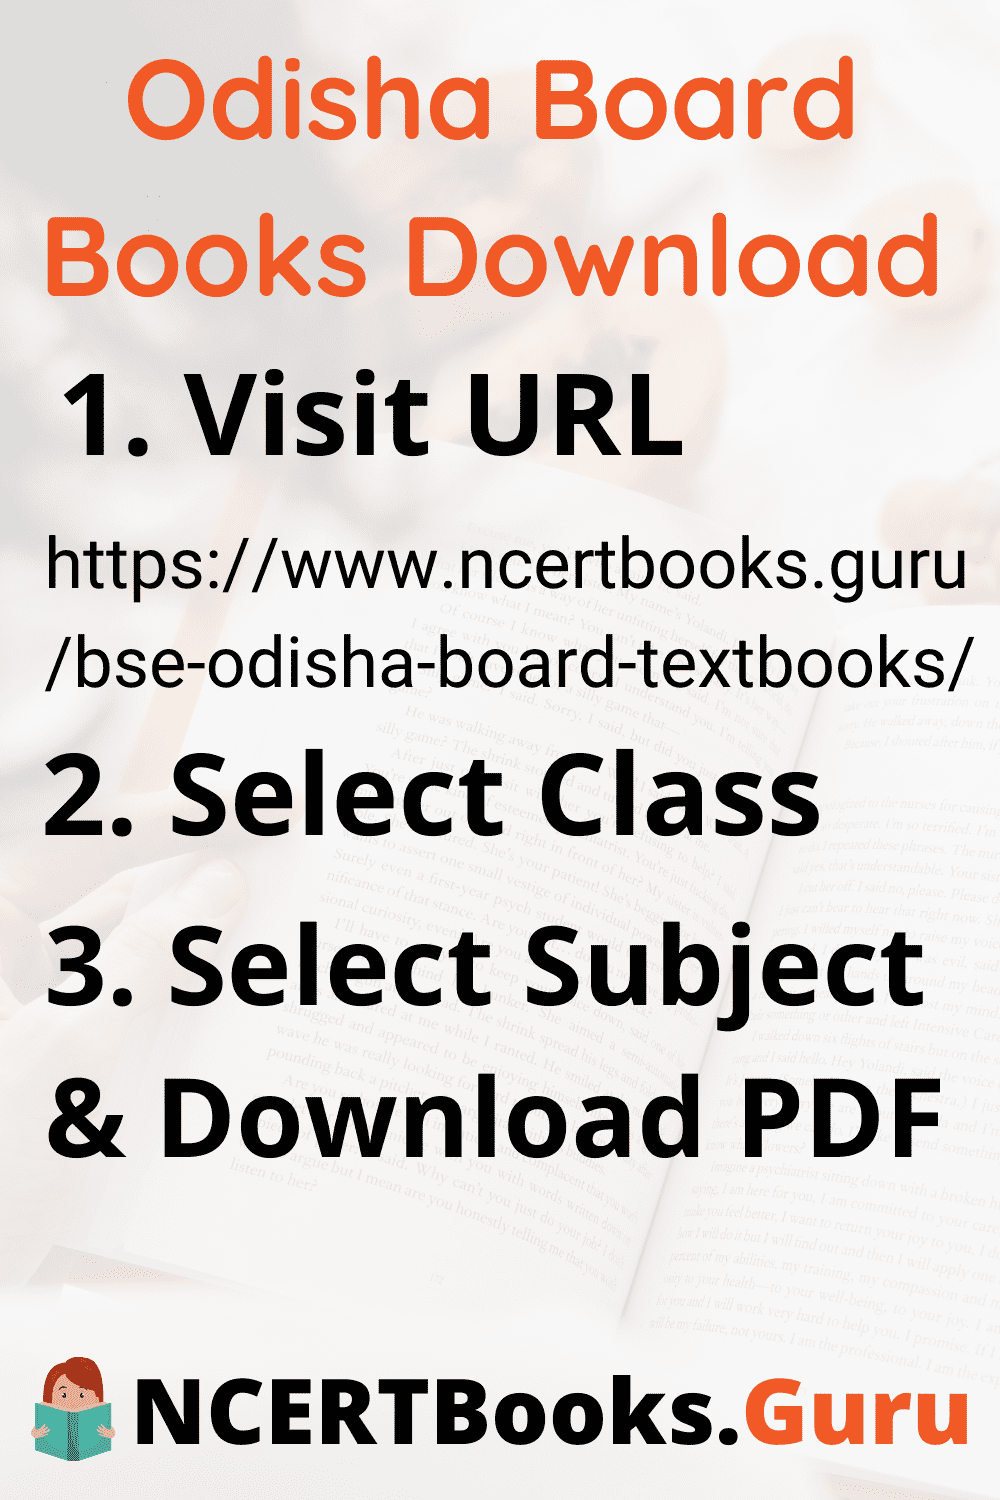 Odisha Board Books Download